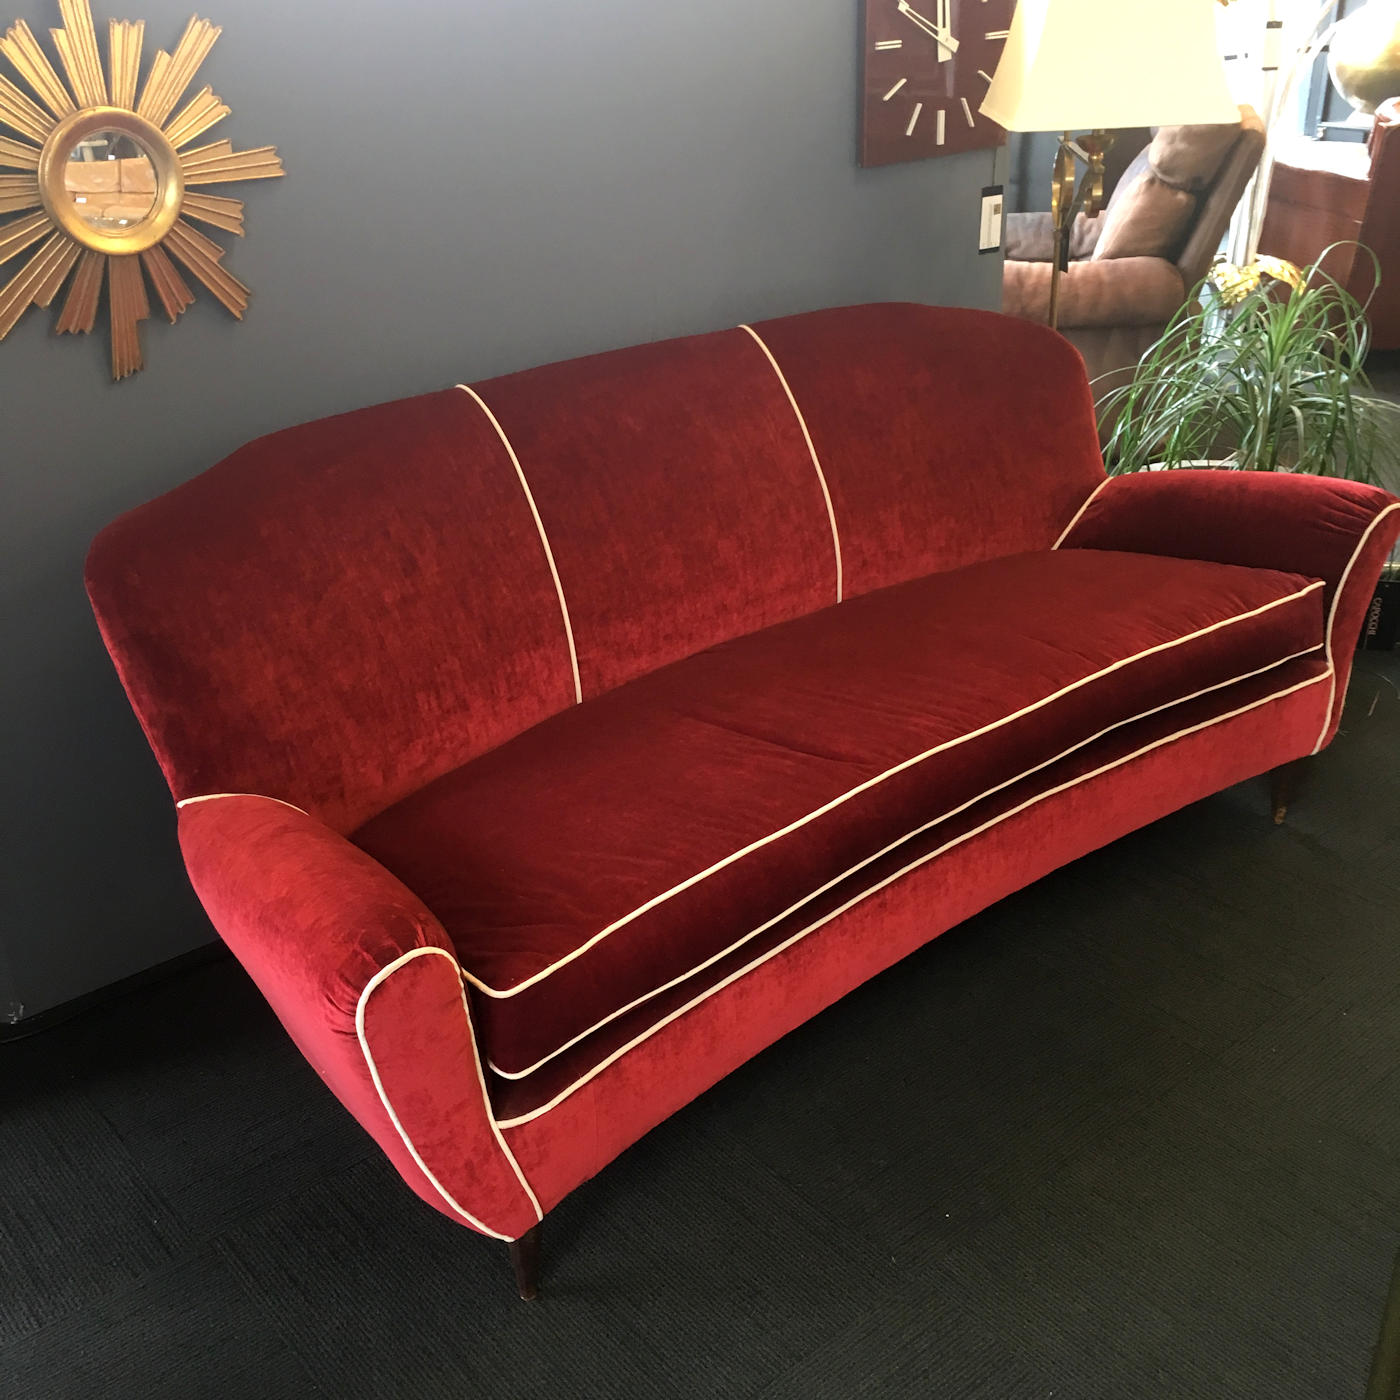 Red Velvet Italian Sofa from the 1950s